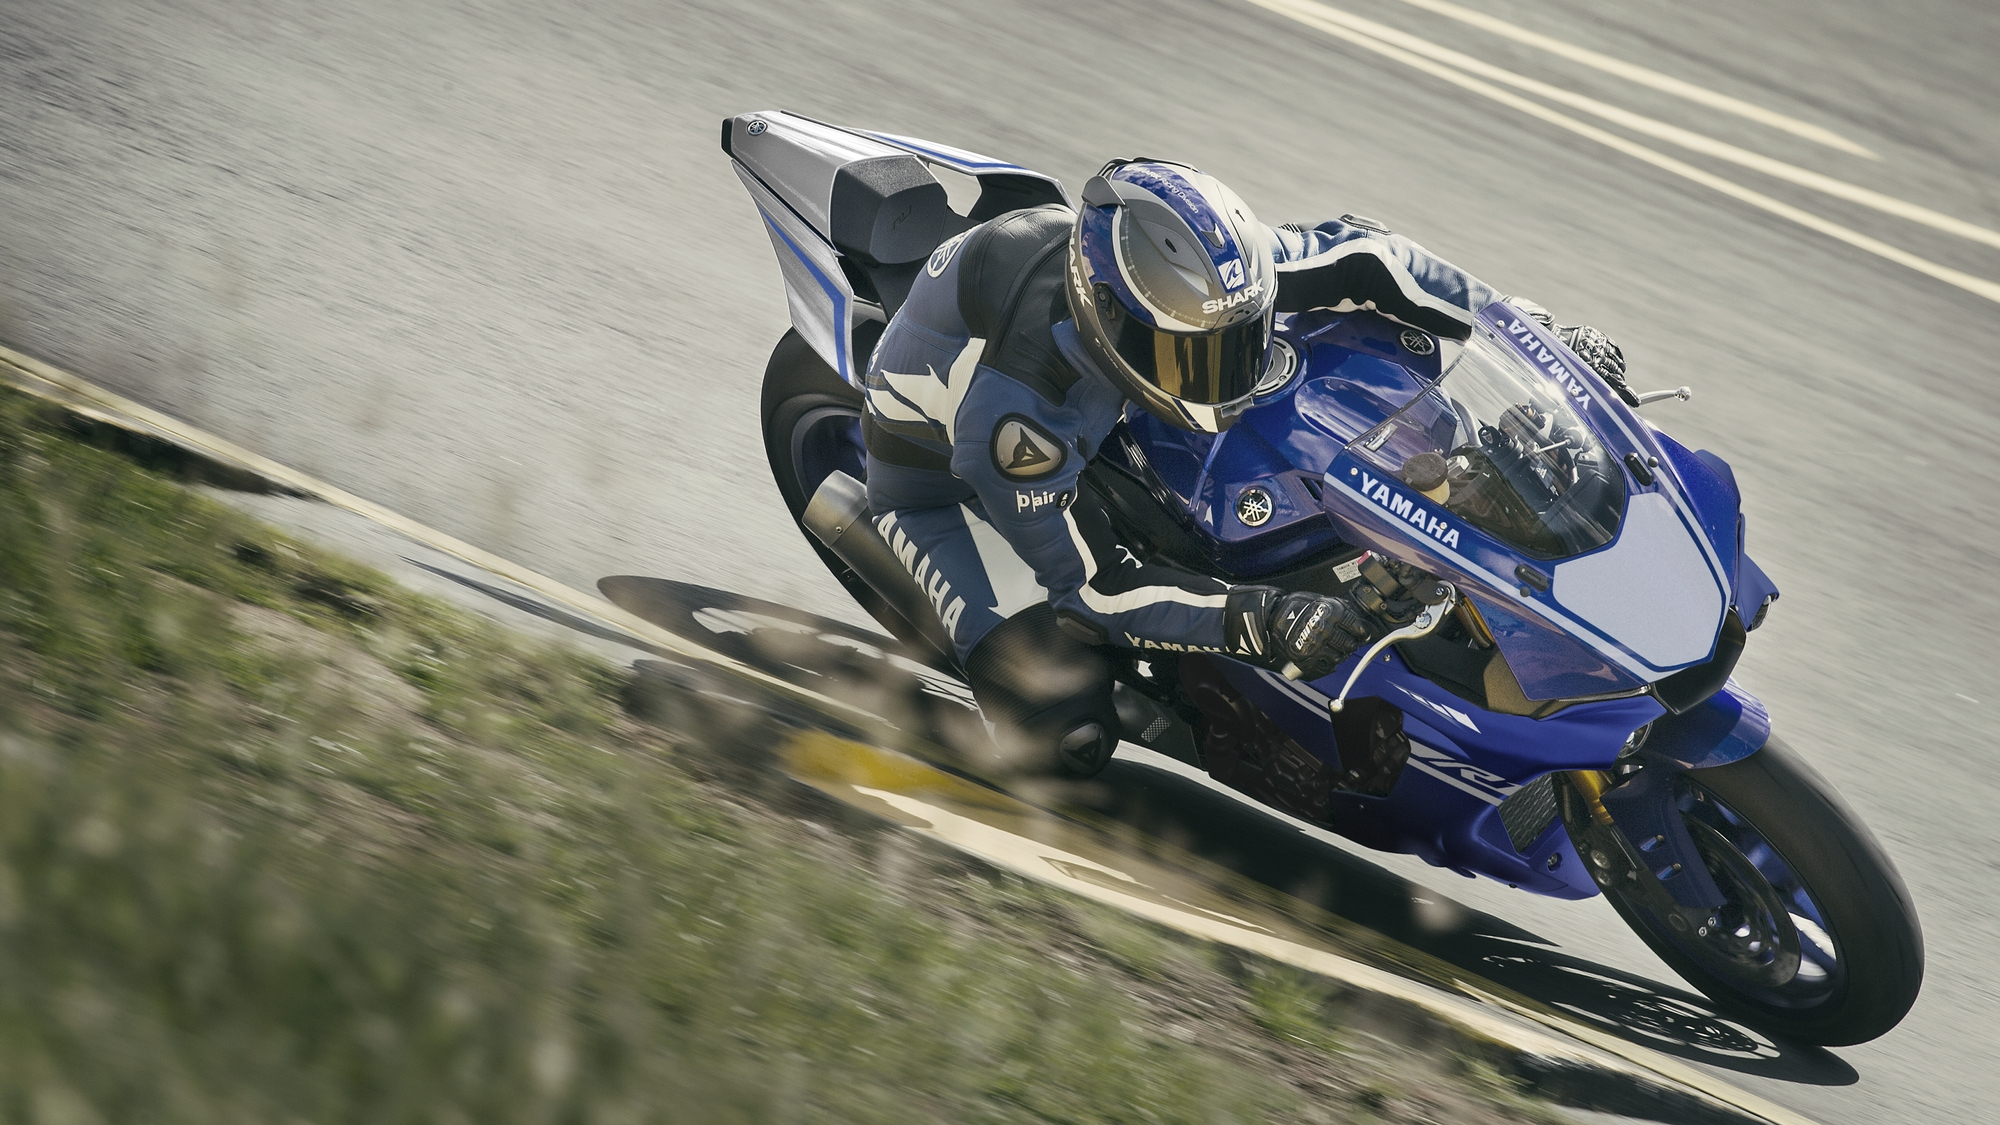 Yamaha yzf r125 usata moto usate 2016 car release date - Hide Previous Next Download Image